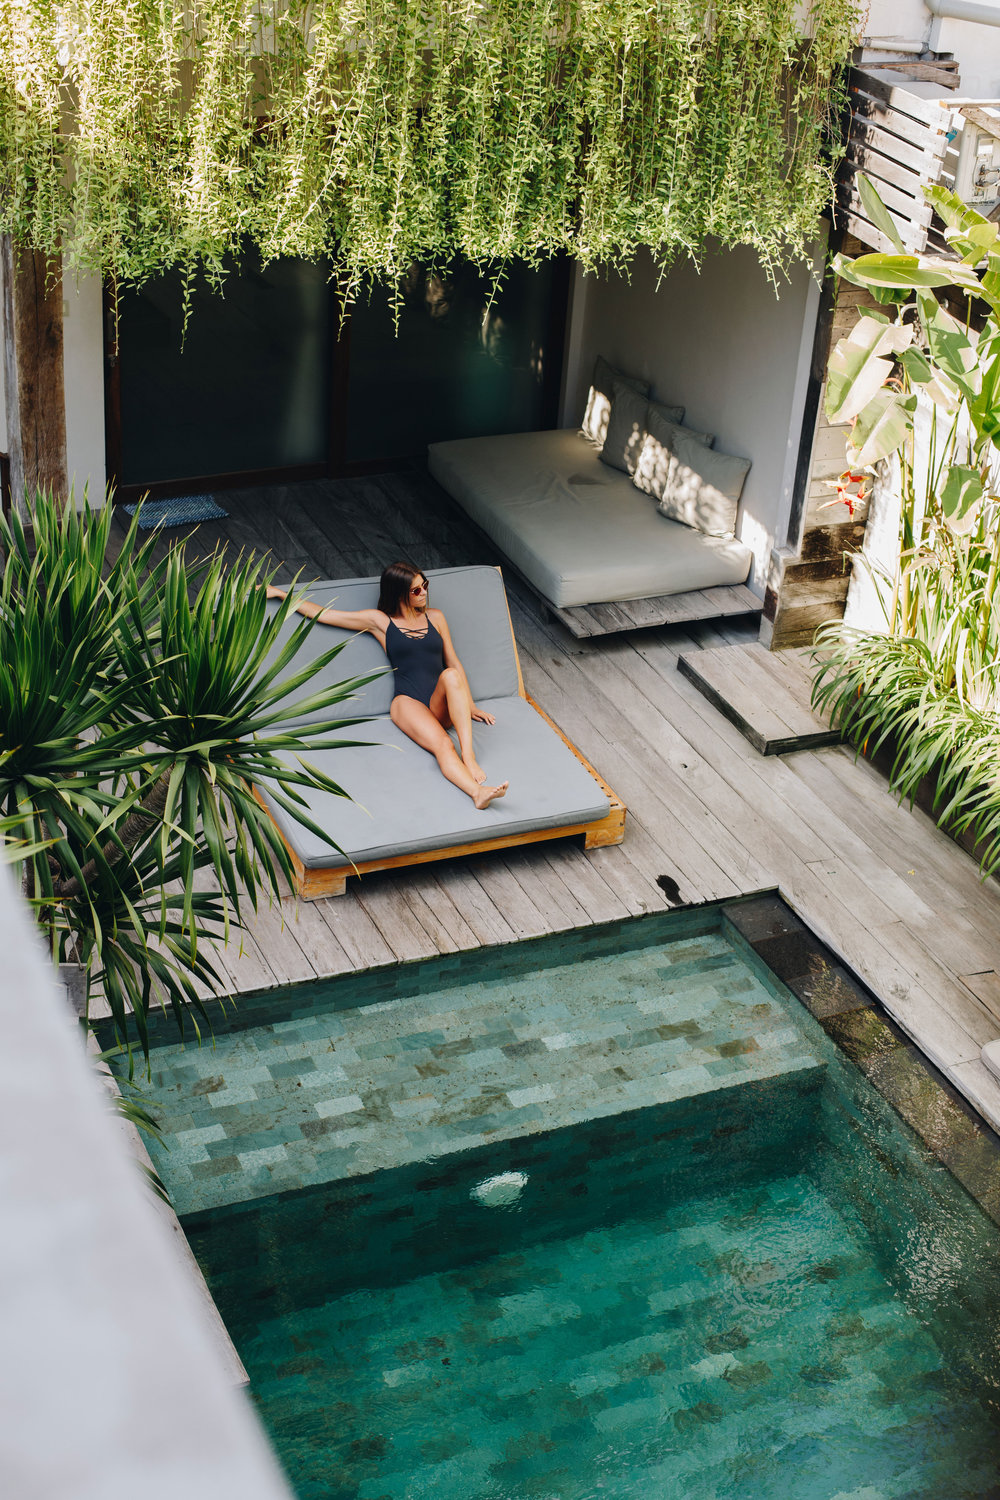 canggu-bali-luxury-pool-villa.jpg